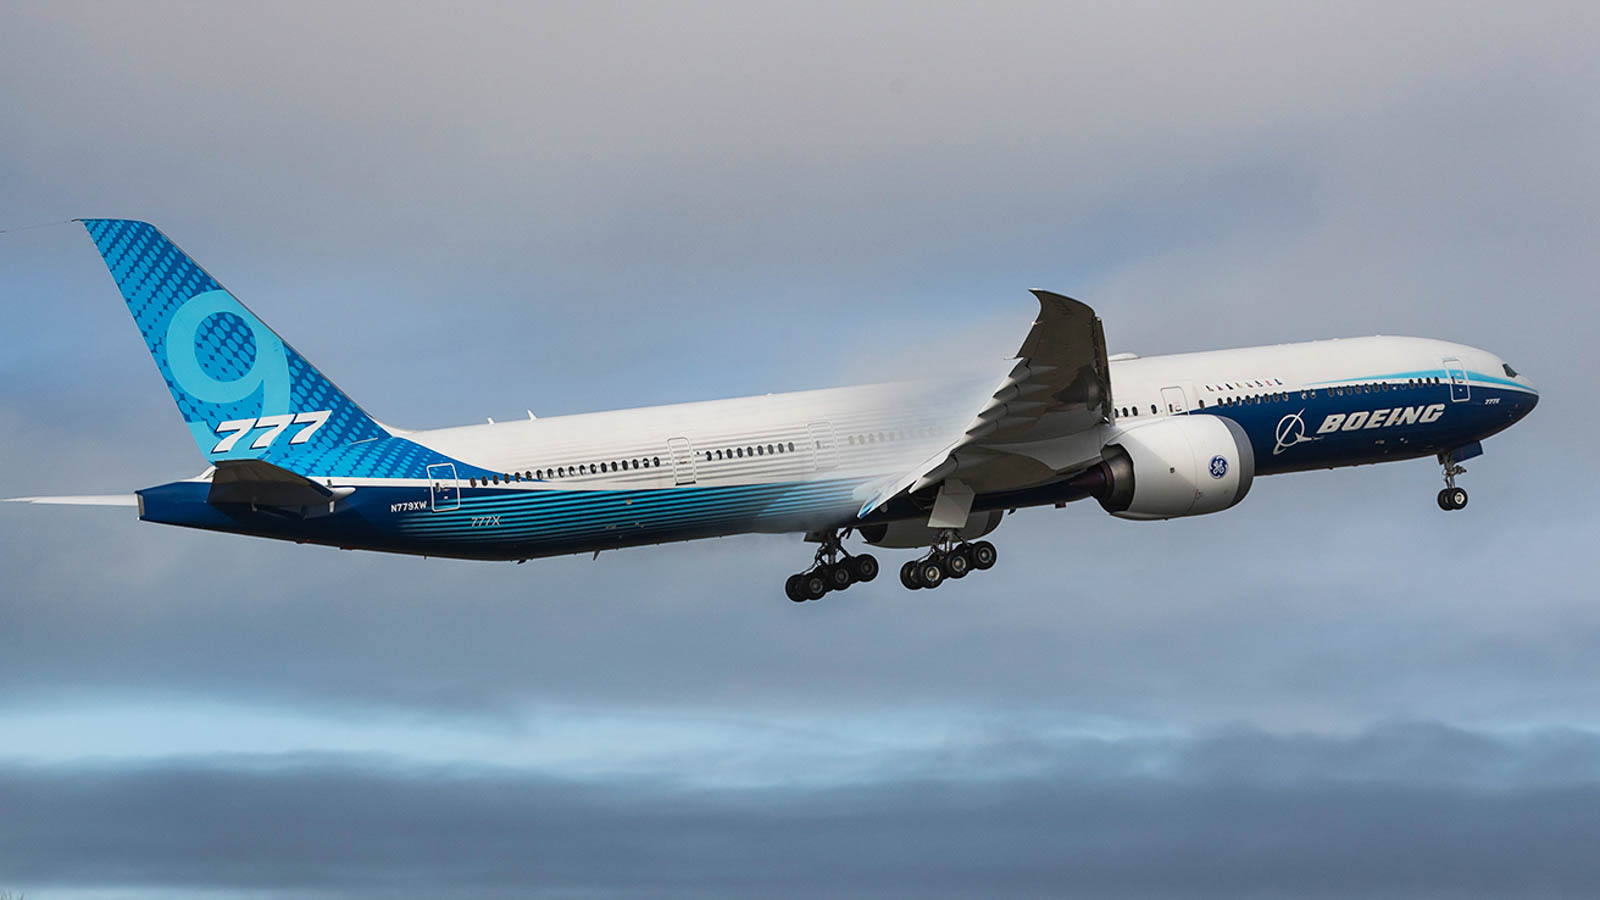 Boeing S Huge 777 9x Airplane Takes Its First Flight Cnn Travel